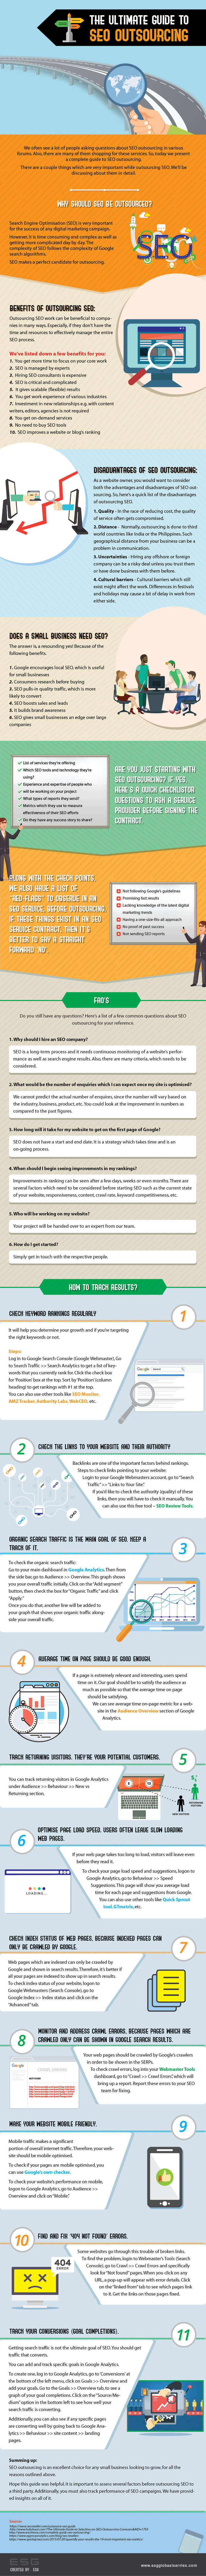 The ultimate guide to SEO outsourcing_infographic